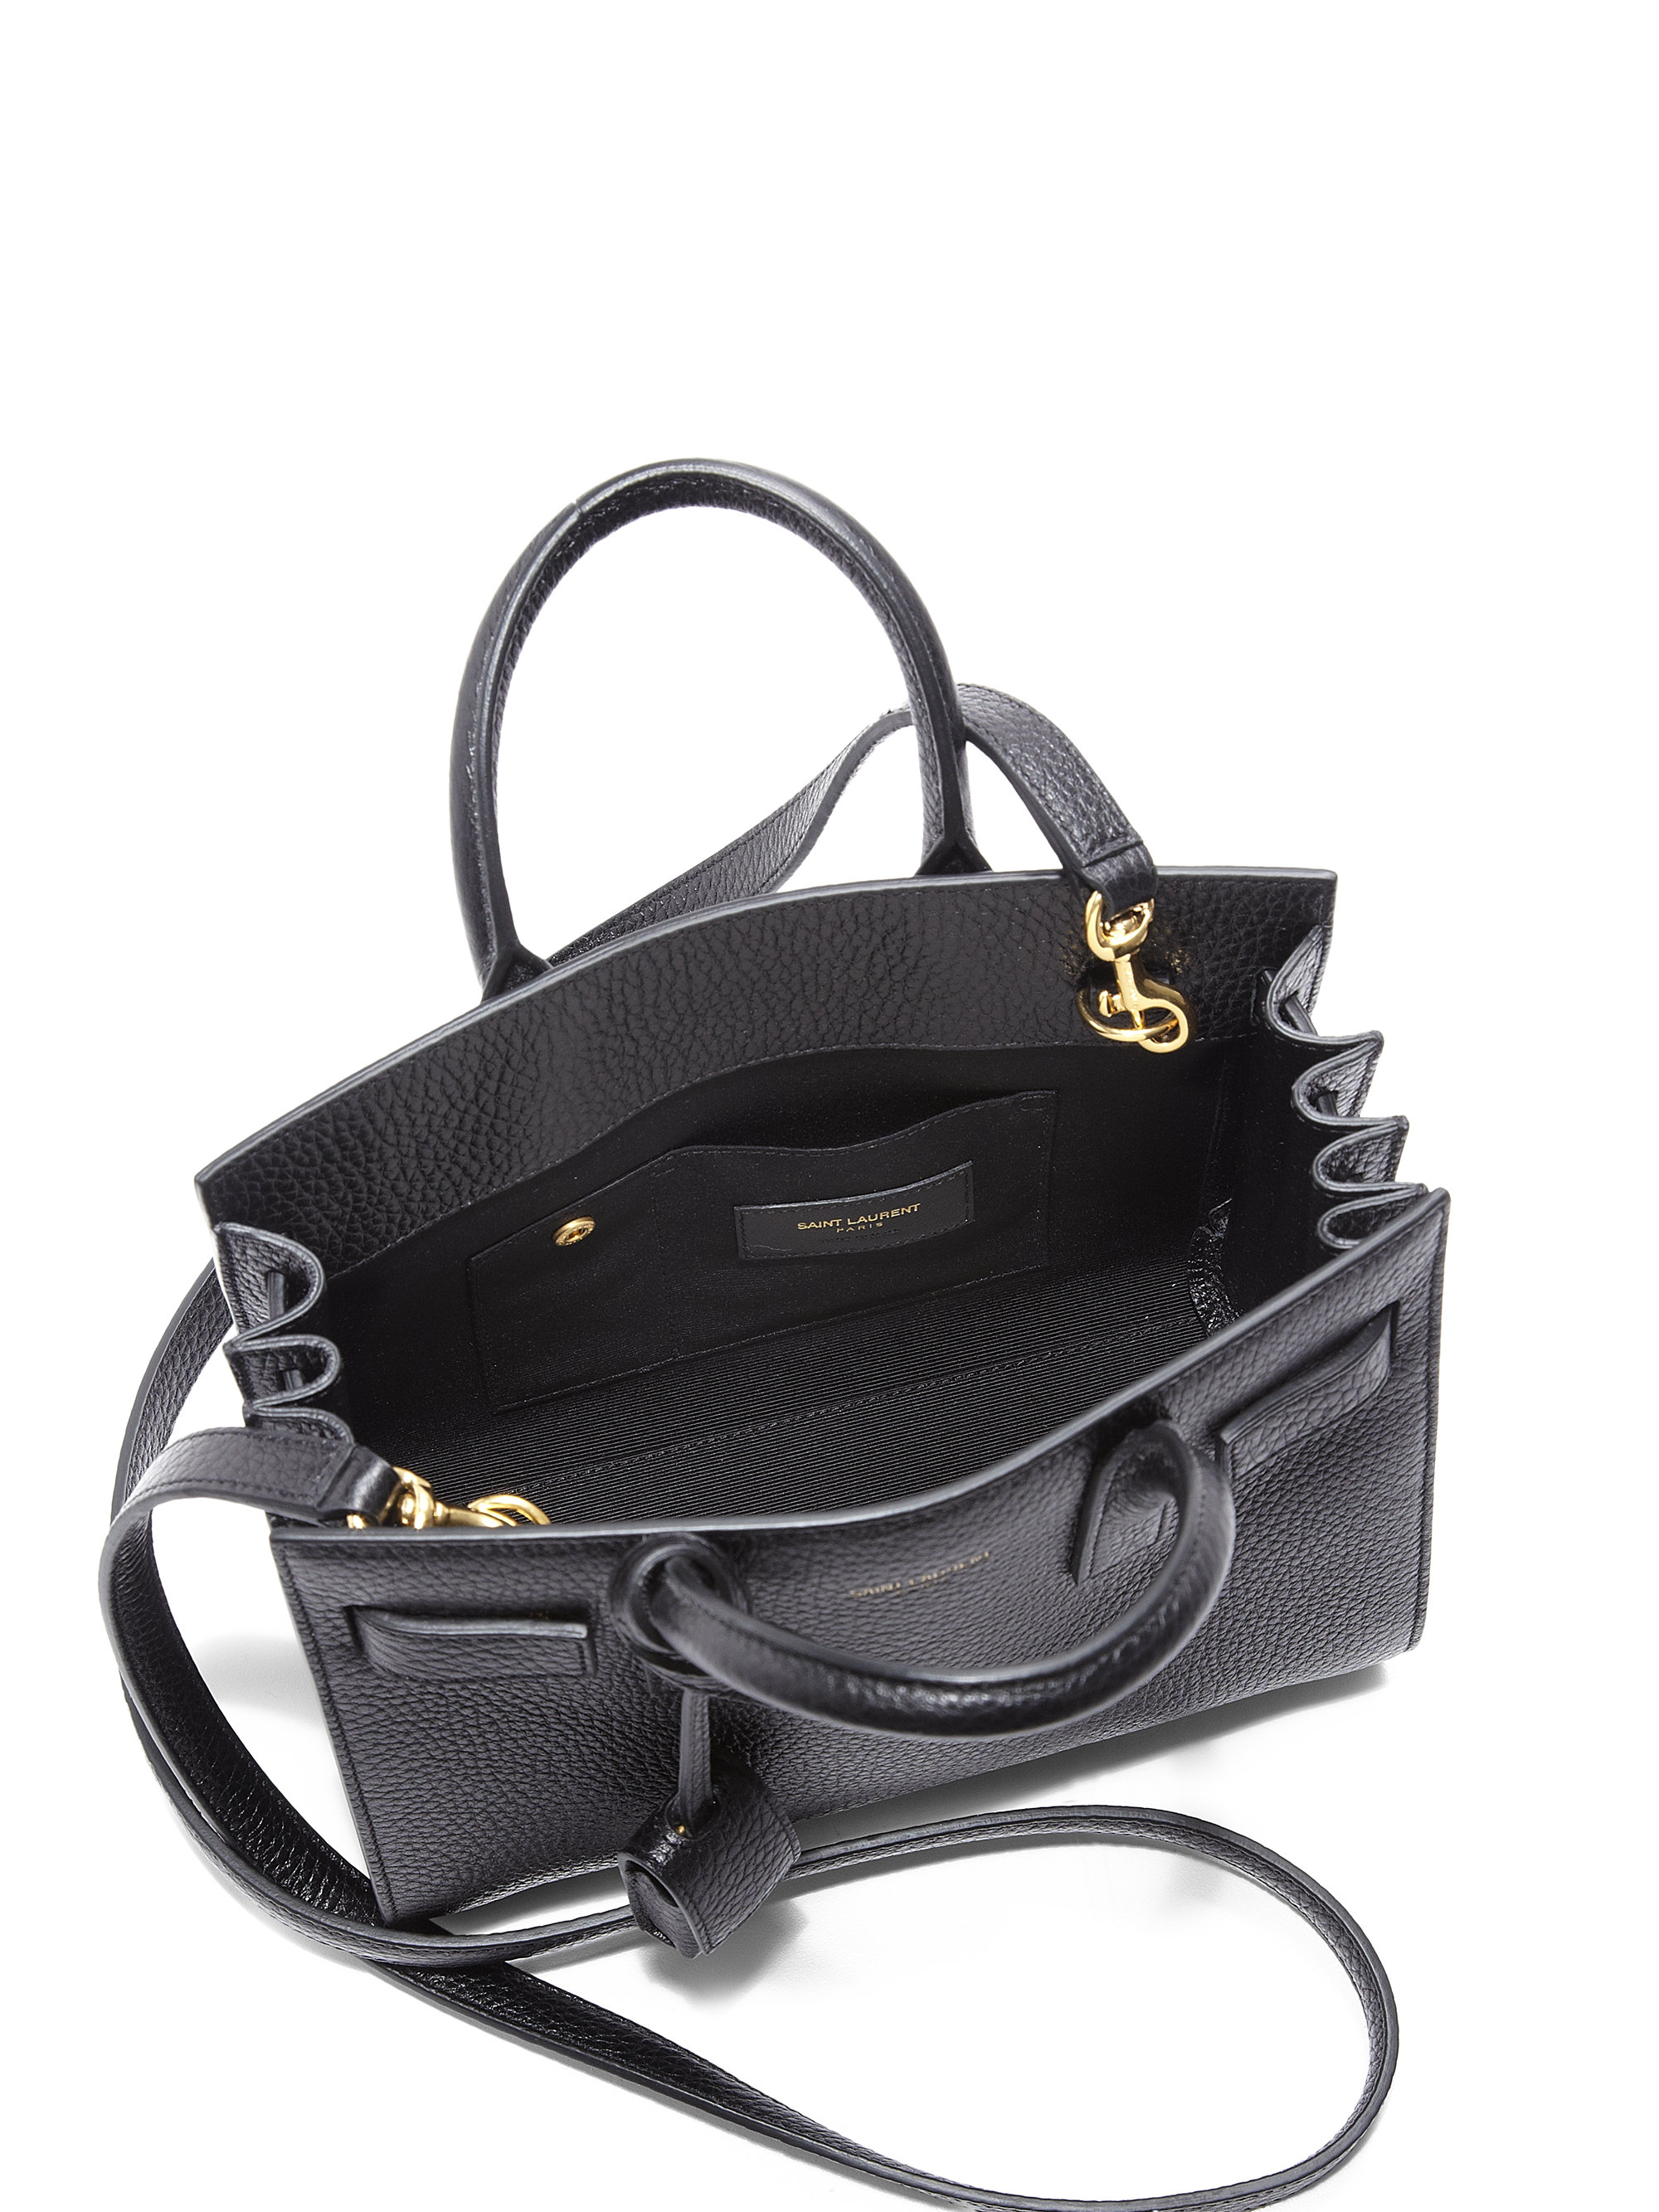 ysl cabas chyc leather tote - yves saint laurent baby sac de jour with embellishment, yves saint ...